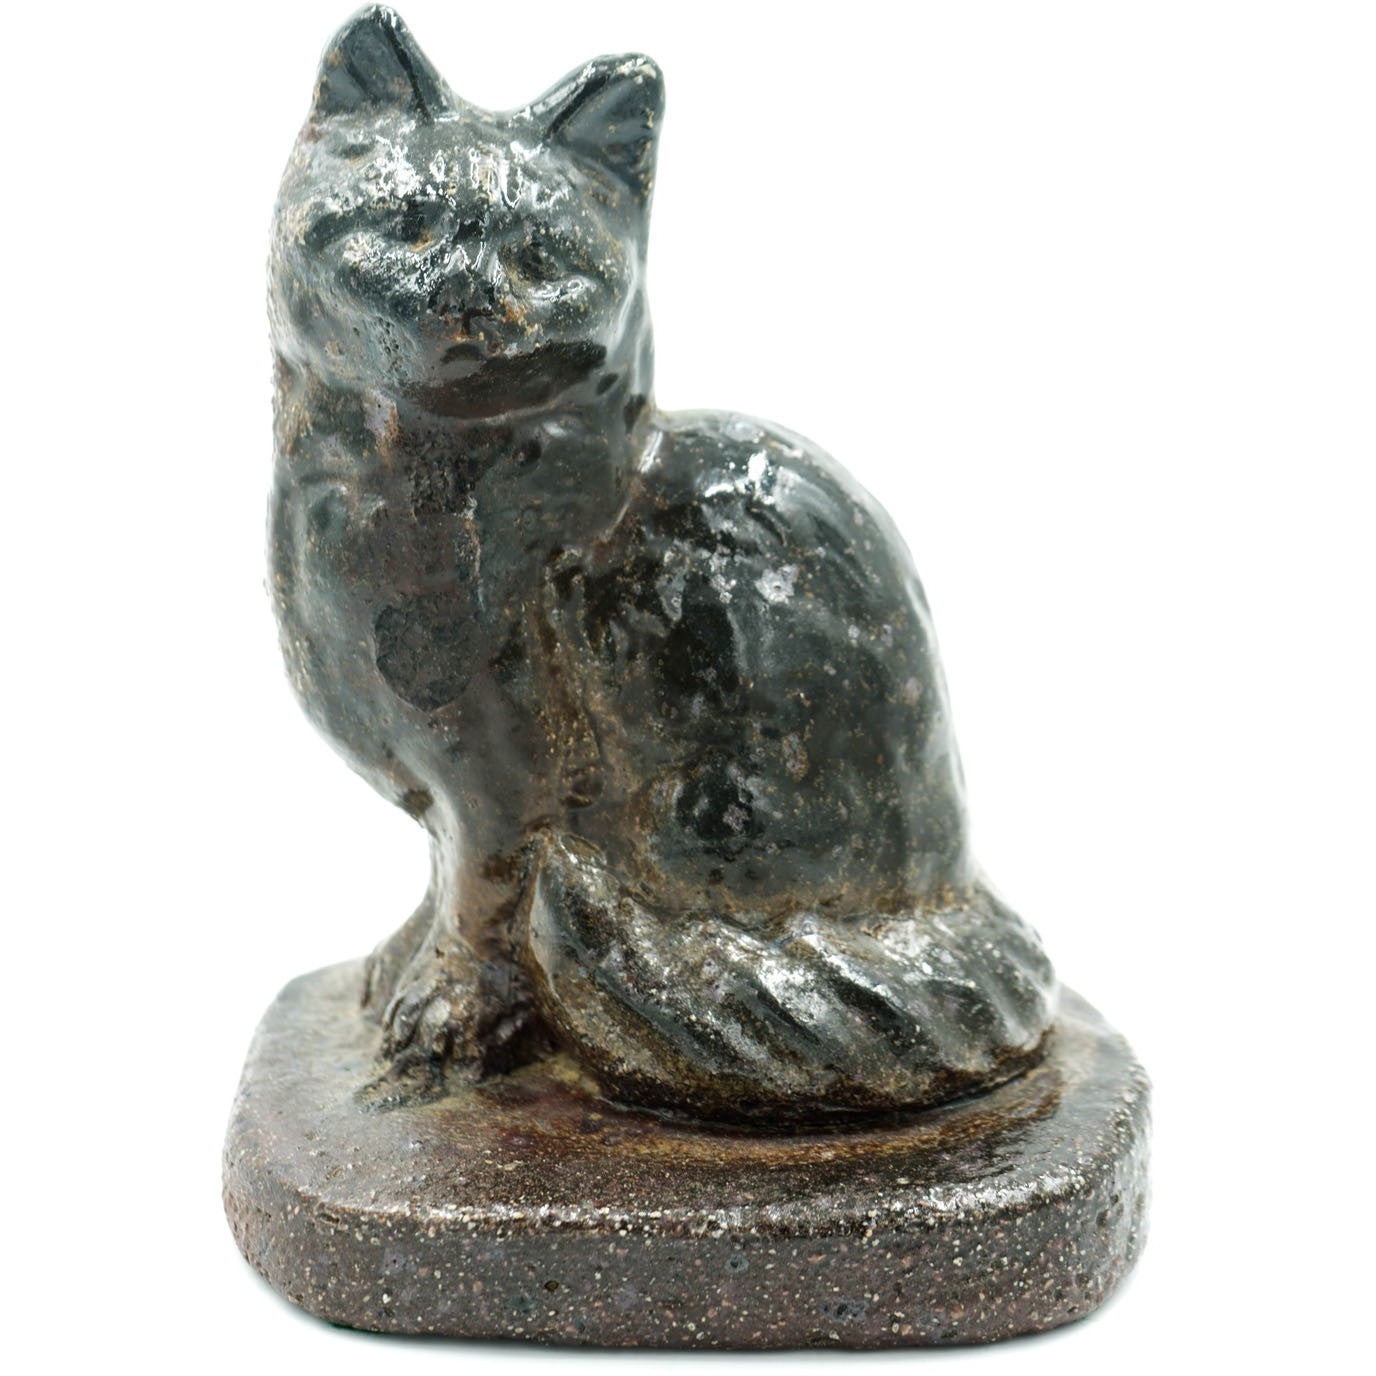 Cat Glazed Sewer Tile Sculpture - Avery, Teach and Co.